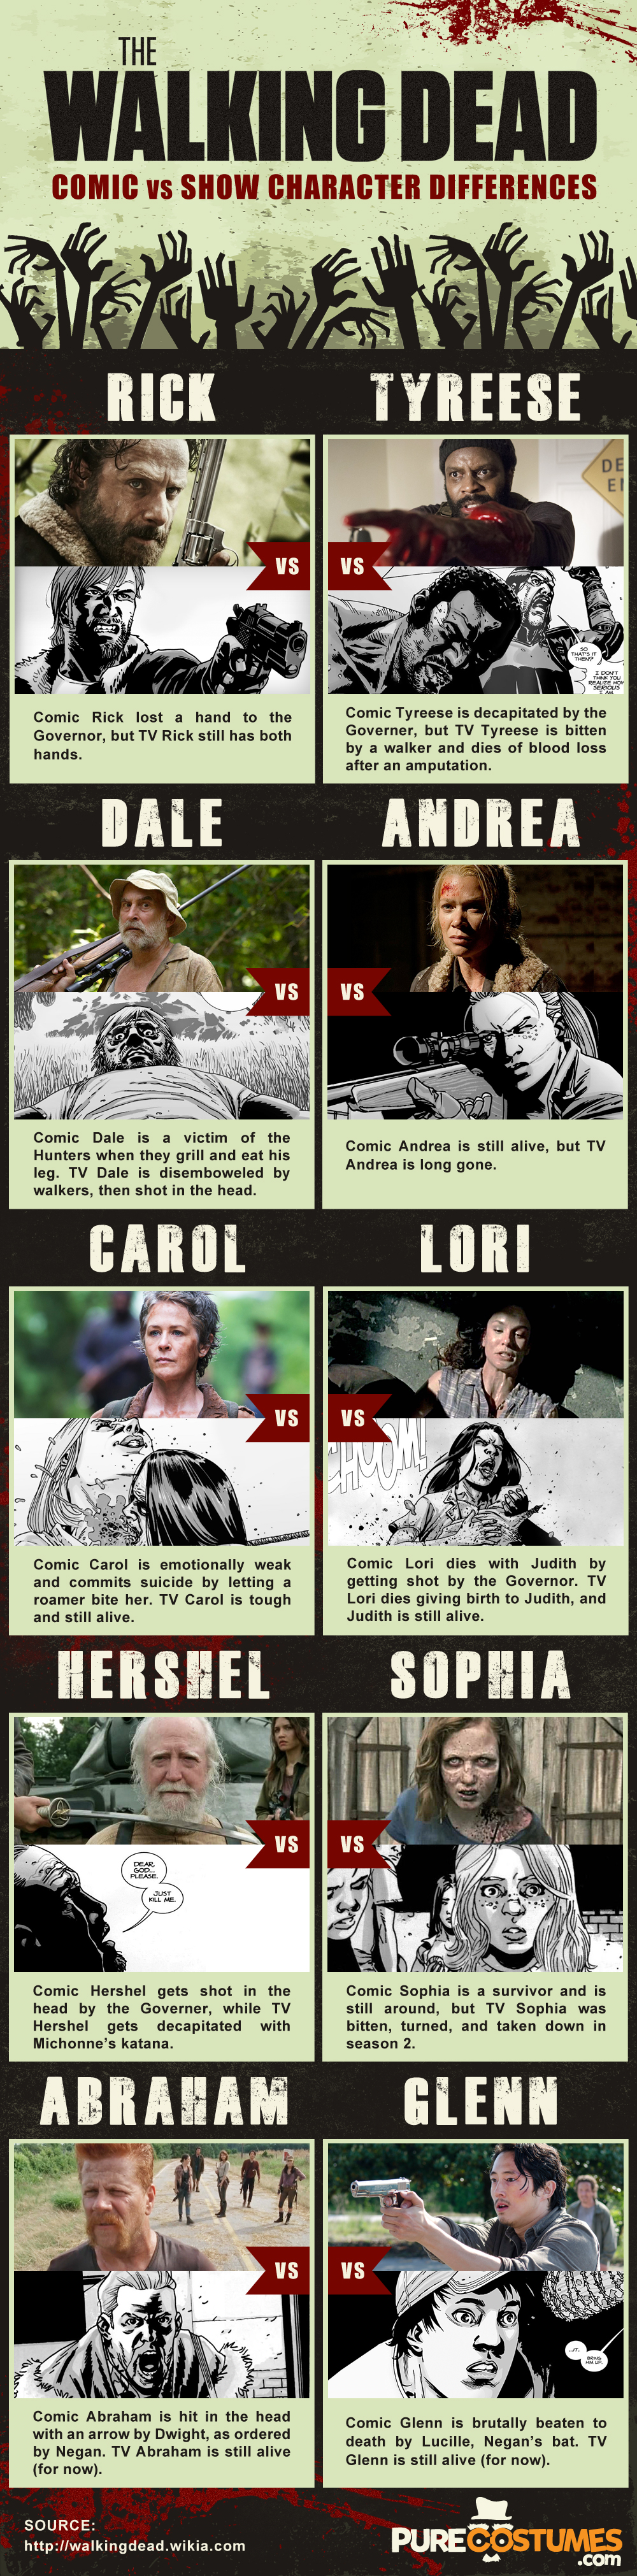 The Walking Dead Infographic